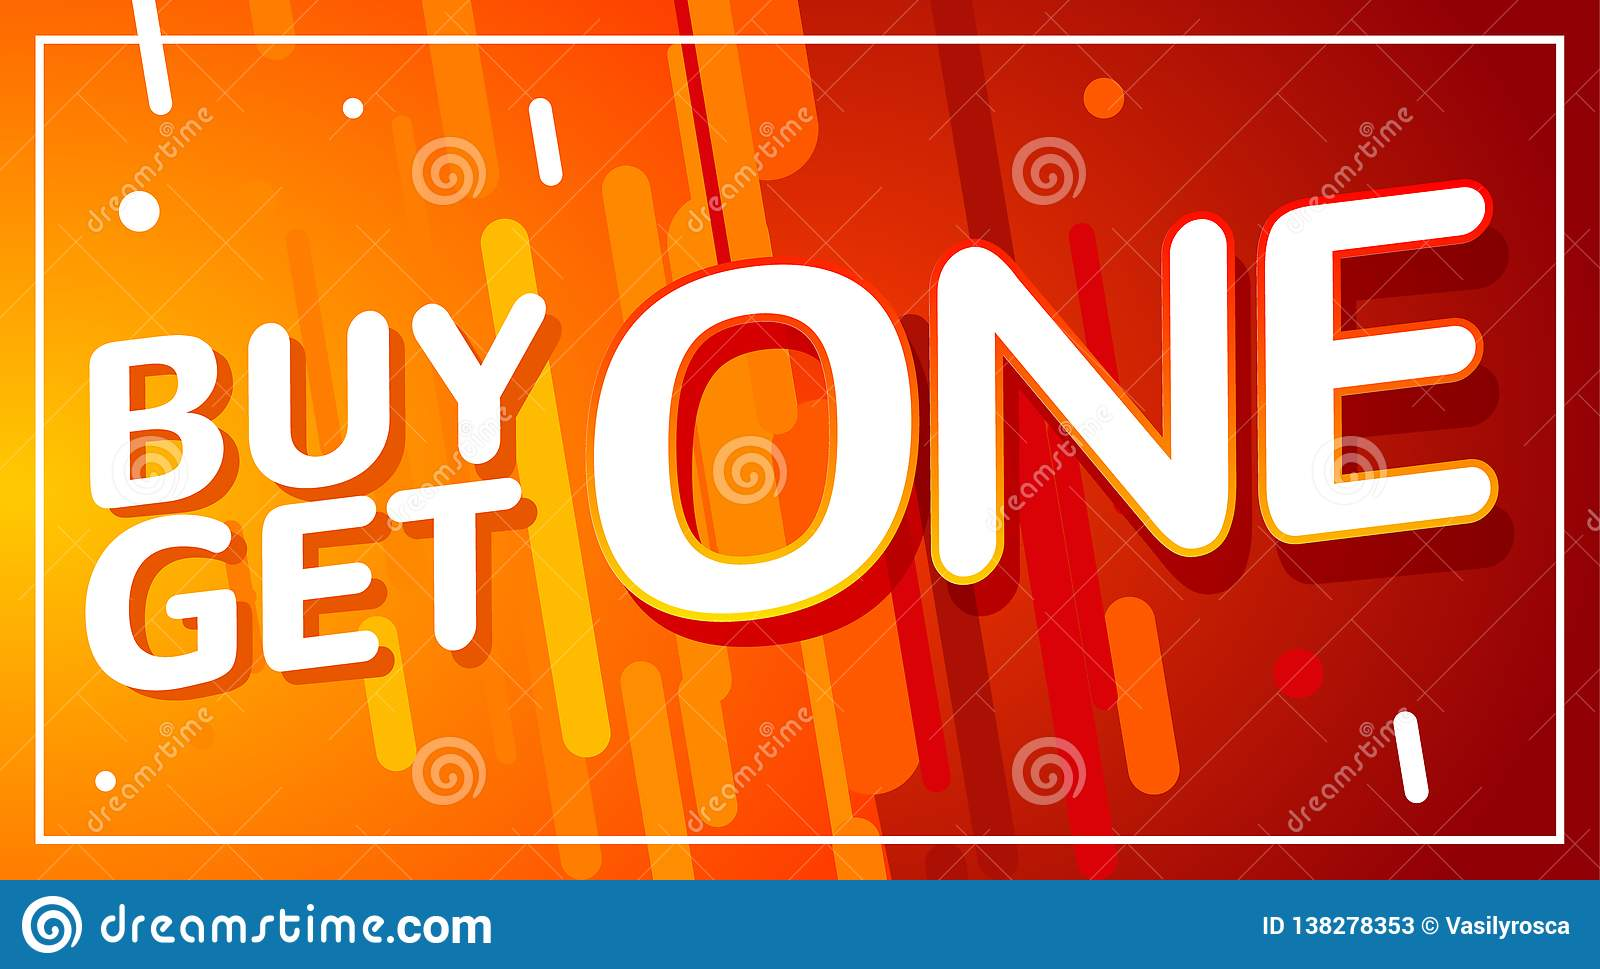 Buy 1 Get 1 Free Sale Poster. Banner Design Template For ...